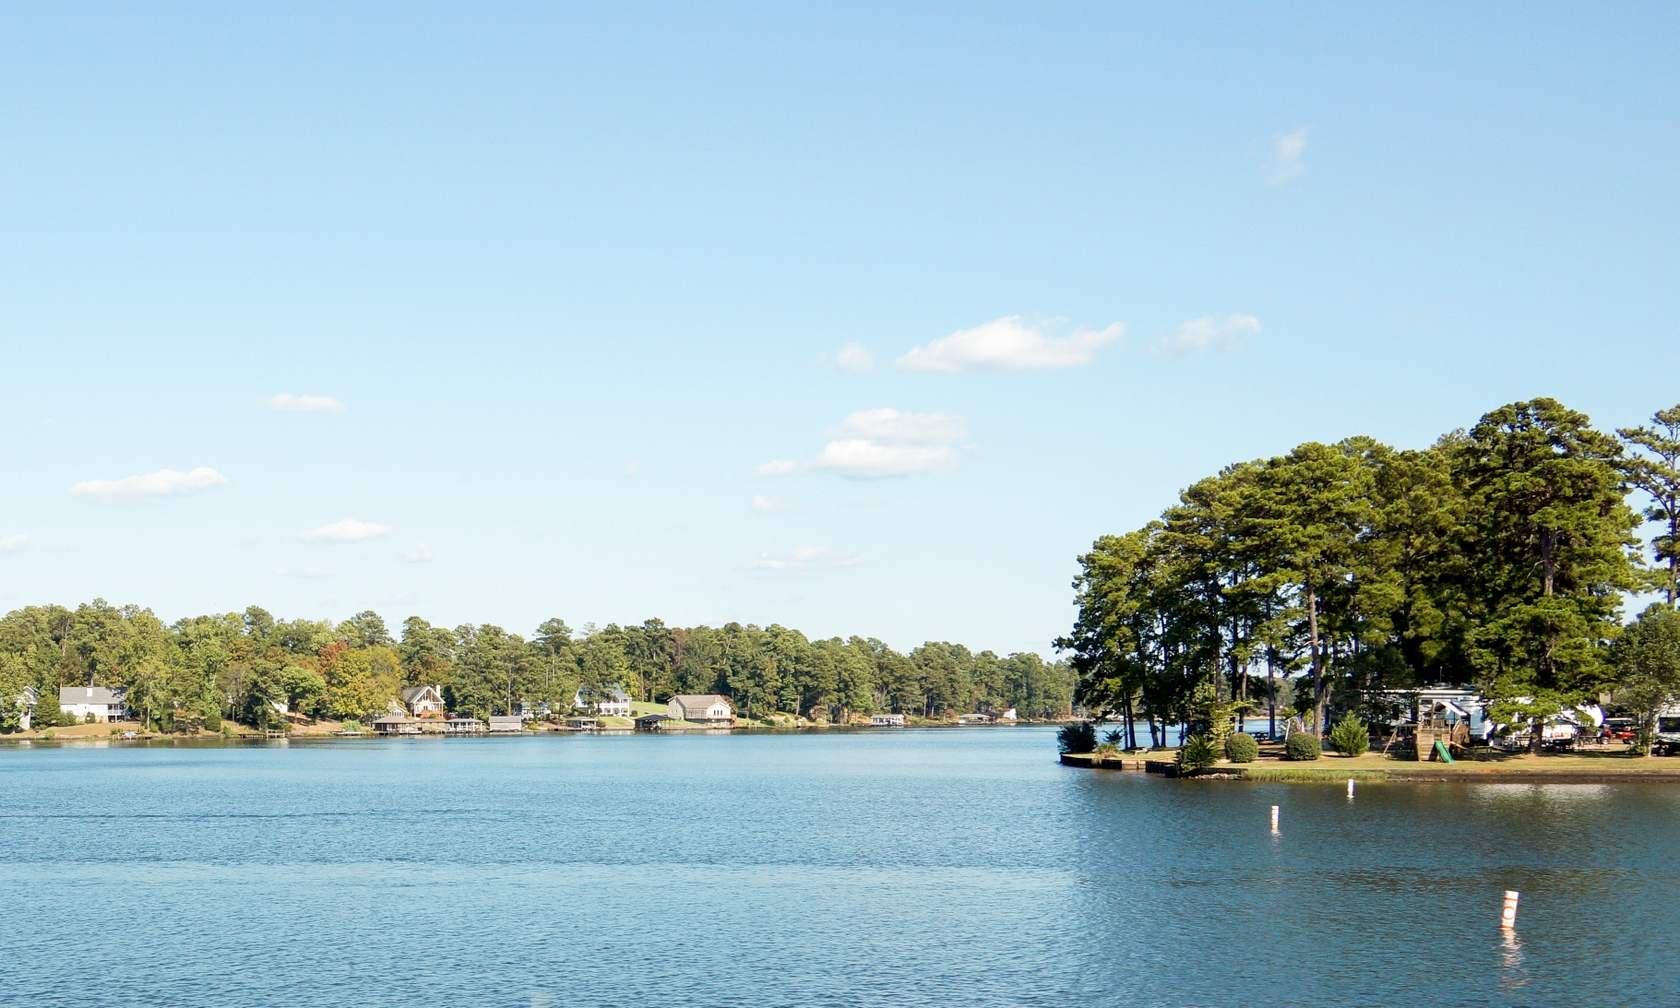 Vacation rentals in Lake Sinclair